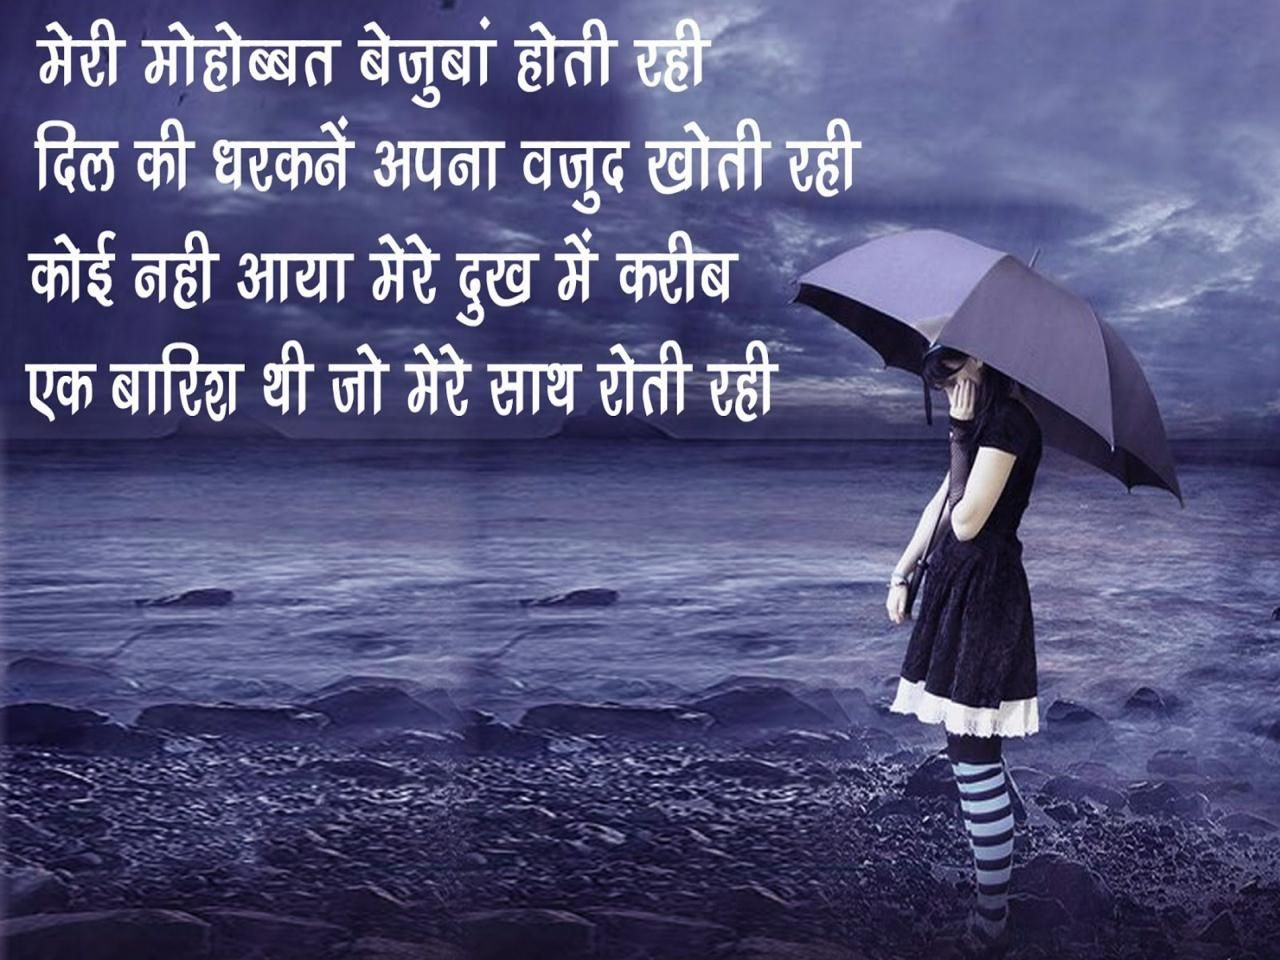 Wallpaper download love sad - Best Very Sad Images Of Love Very Sad Love Shayari Image In Hindi For Lover